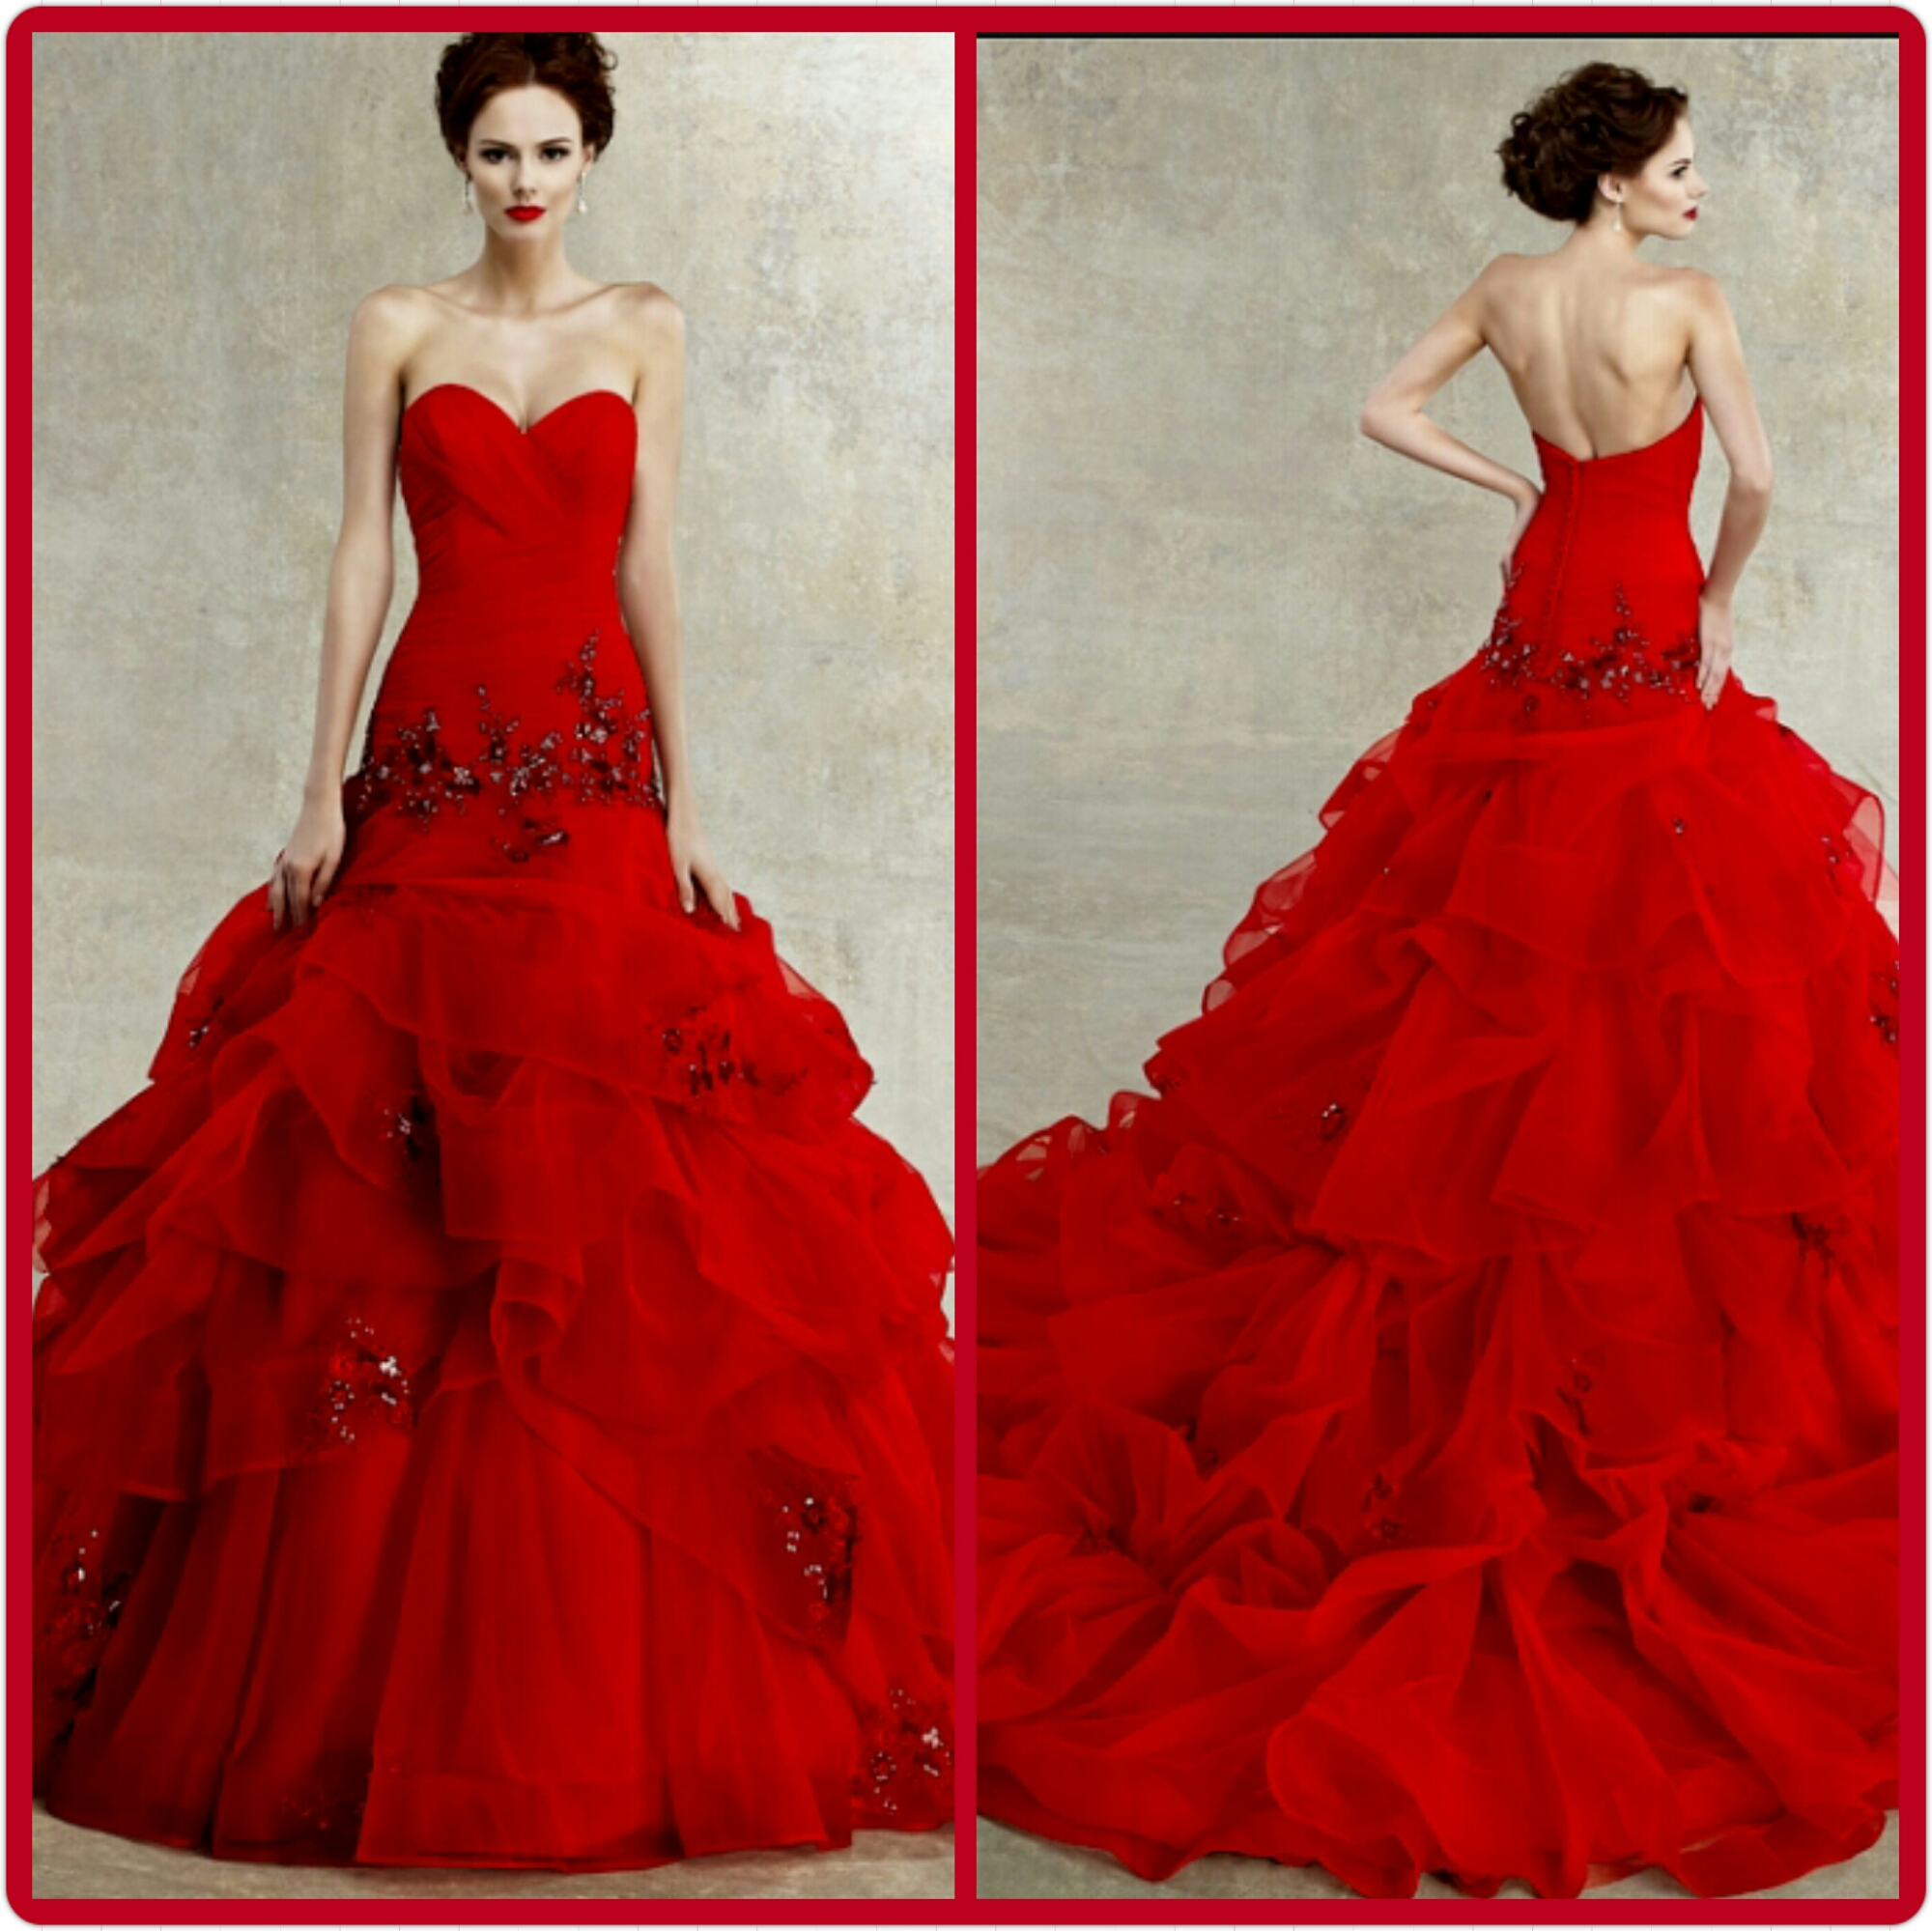 Awesome Red Long Gowns Embellishment - Wedding and flowers ...